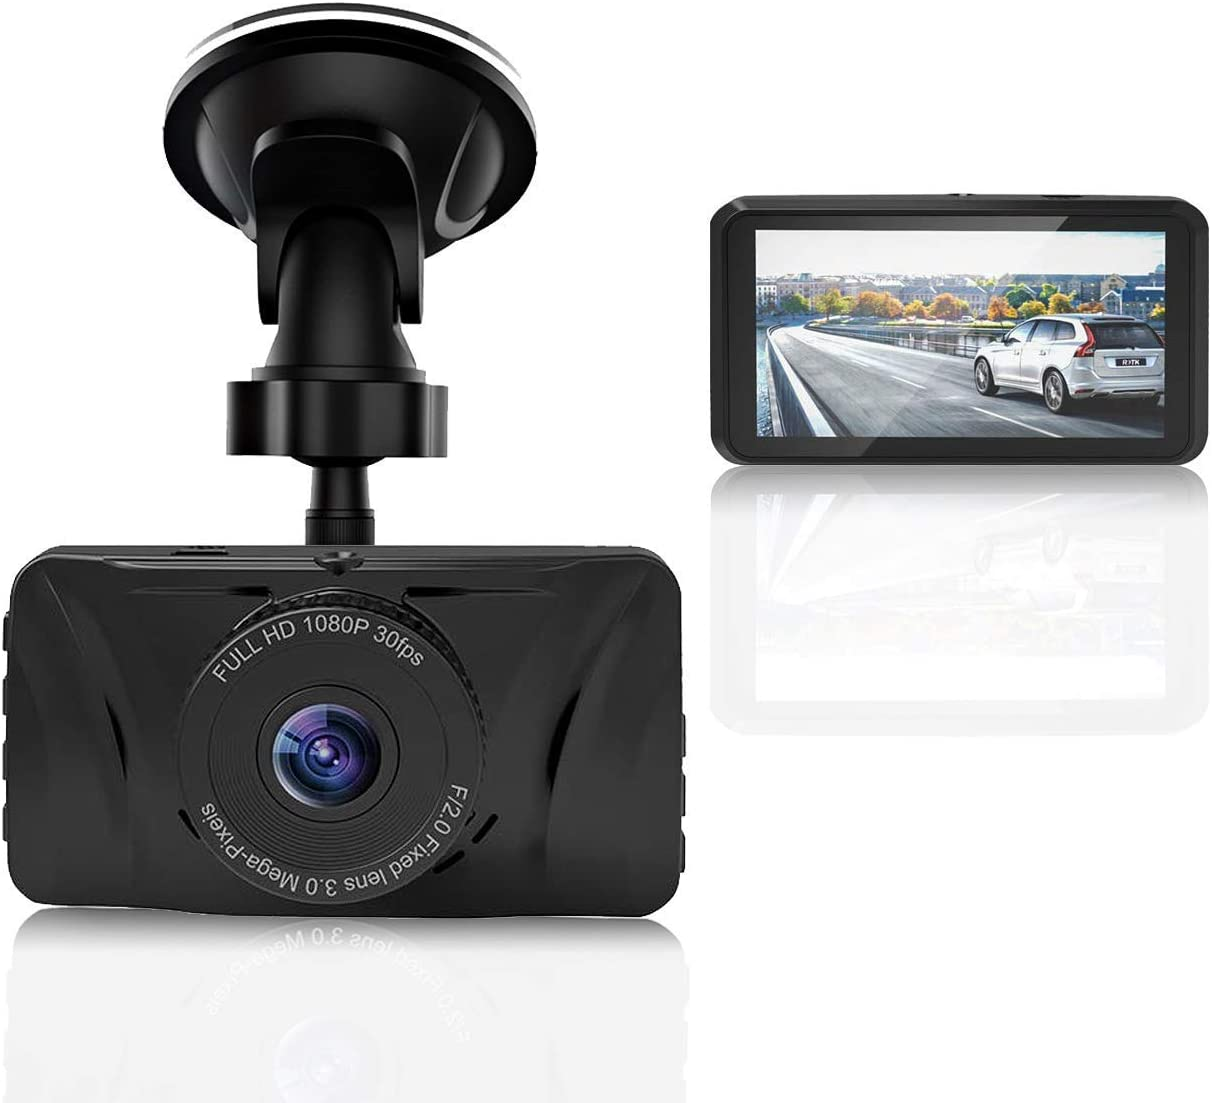 YUZES Dash Cam 1080P FHD DVR Car Driving Recorder 3 Inch LCD Screen 170 Wide Angle, G-Sensor, WDR, Parking Monitor, Loop Recording, Motion Detection